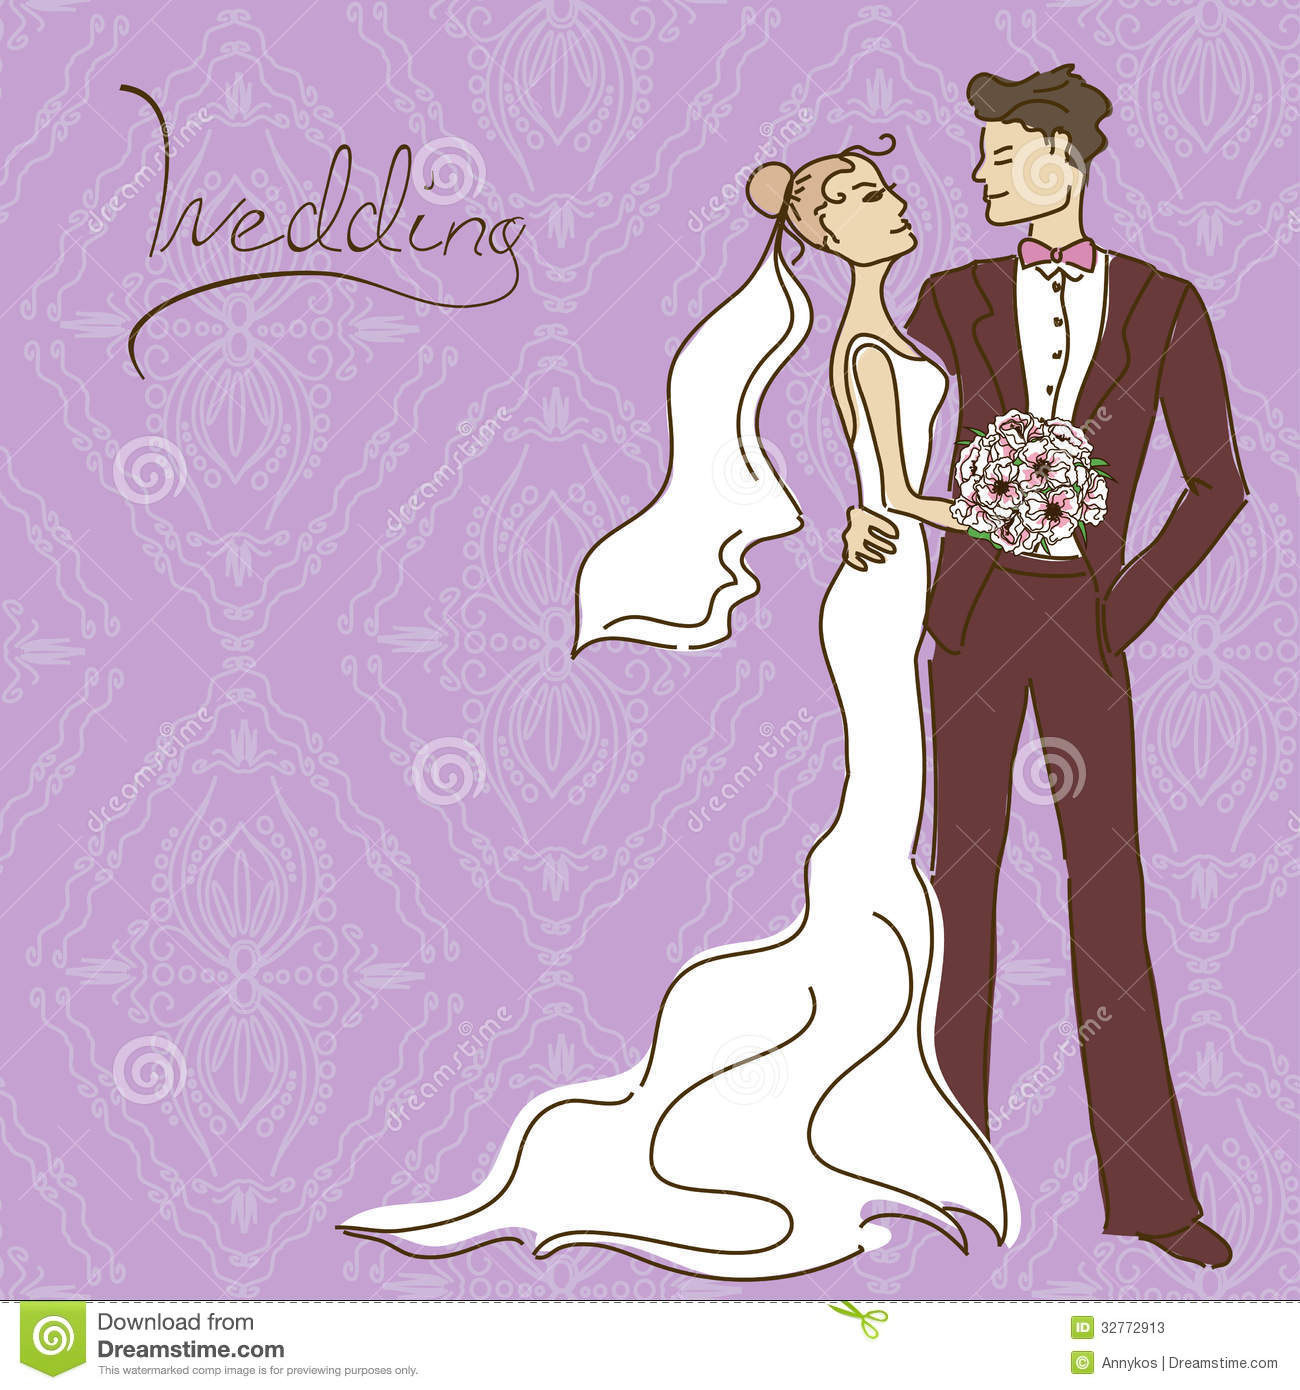 Wedding Invitation Or Card With Couple Stock Photos - Image: 32772913